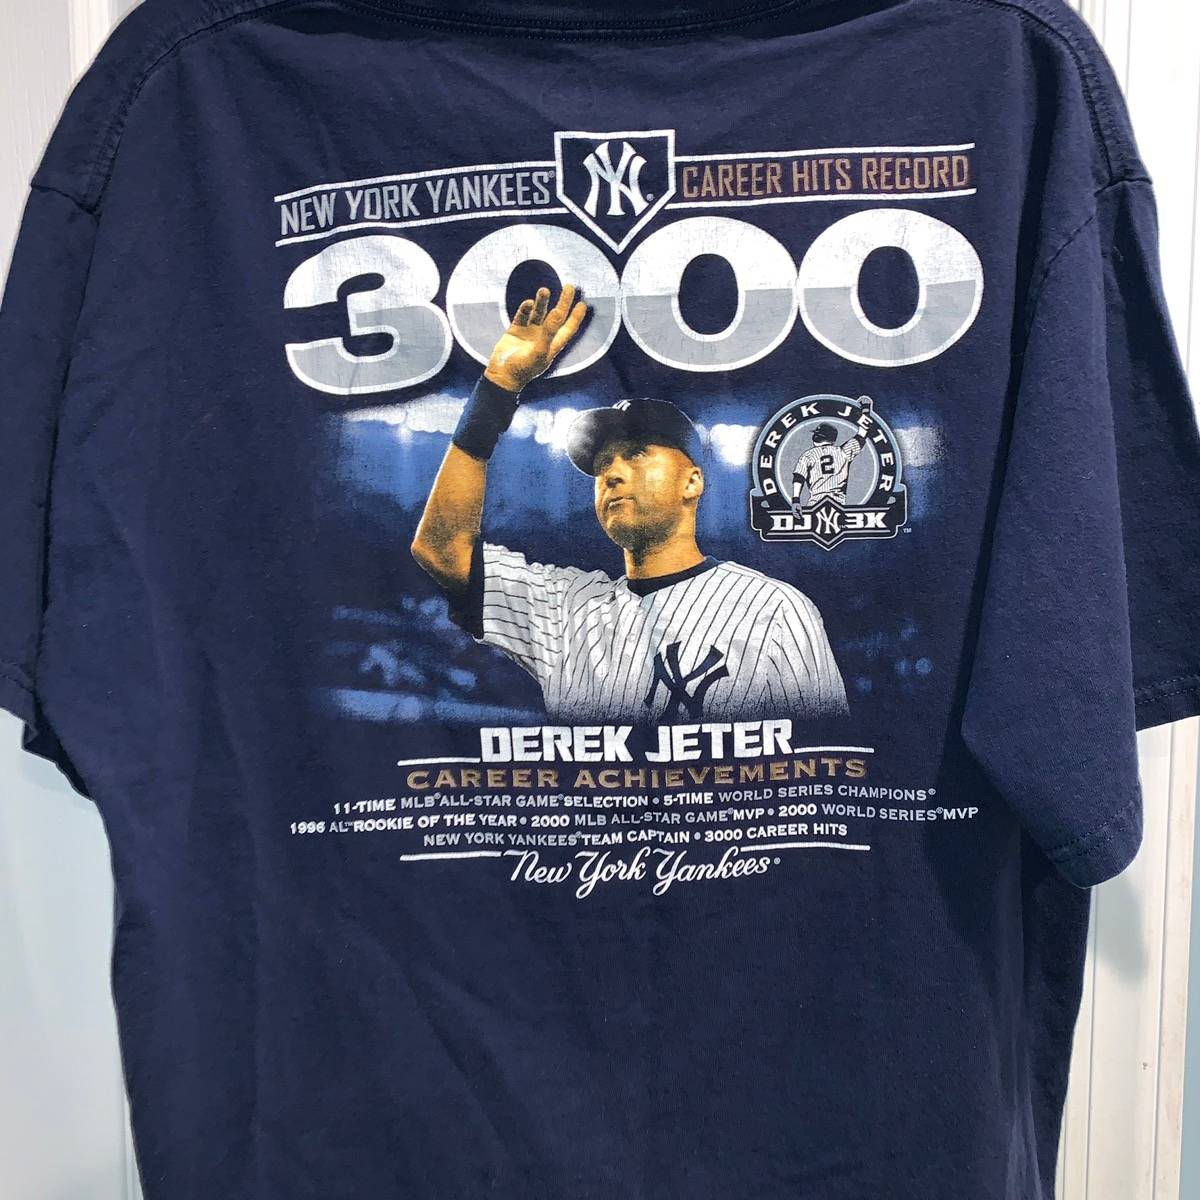 new product ec3f5 972f7 Majestic × New York Yankees × Vintage Vintage Derek Jeter Ny Yankees  Achievement Shirt Size L $22